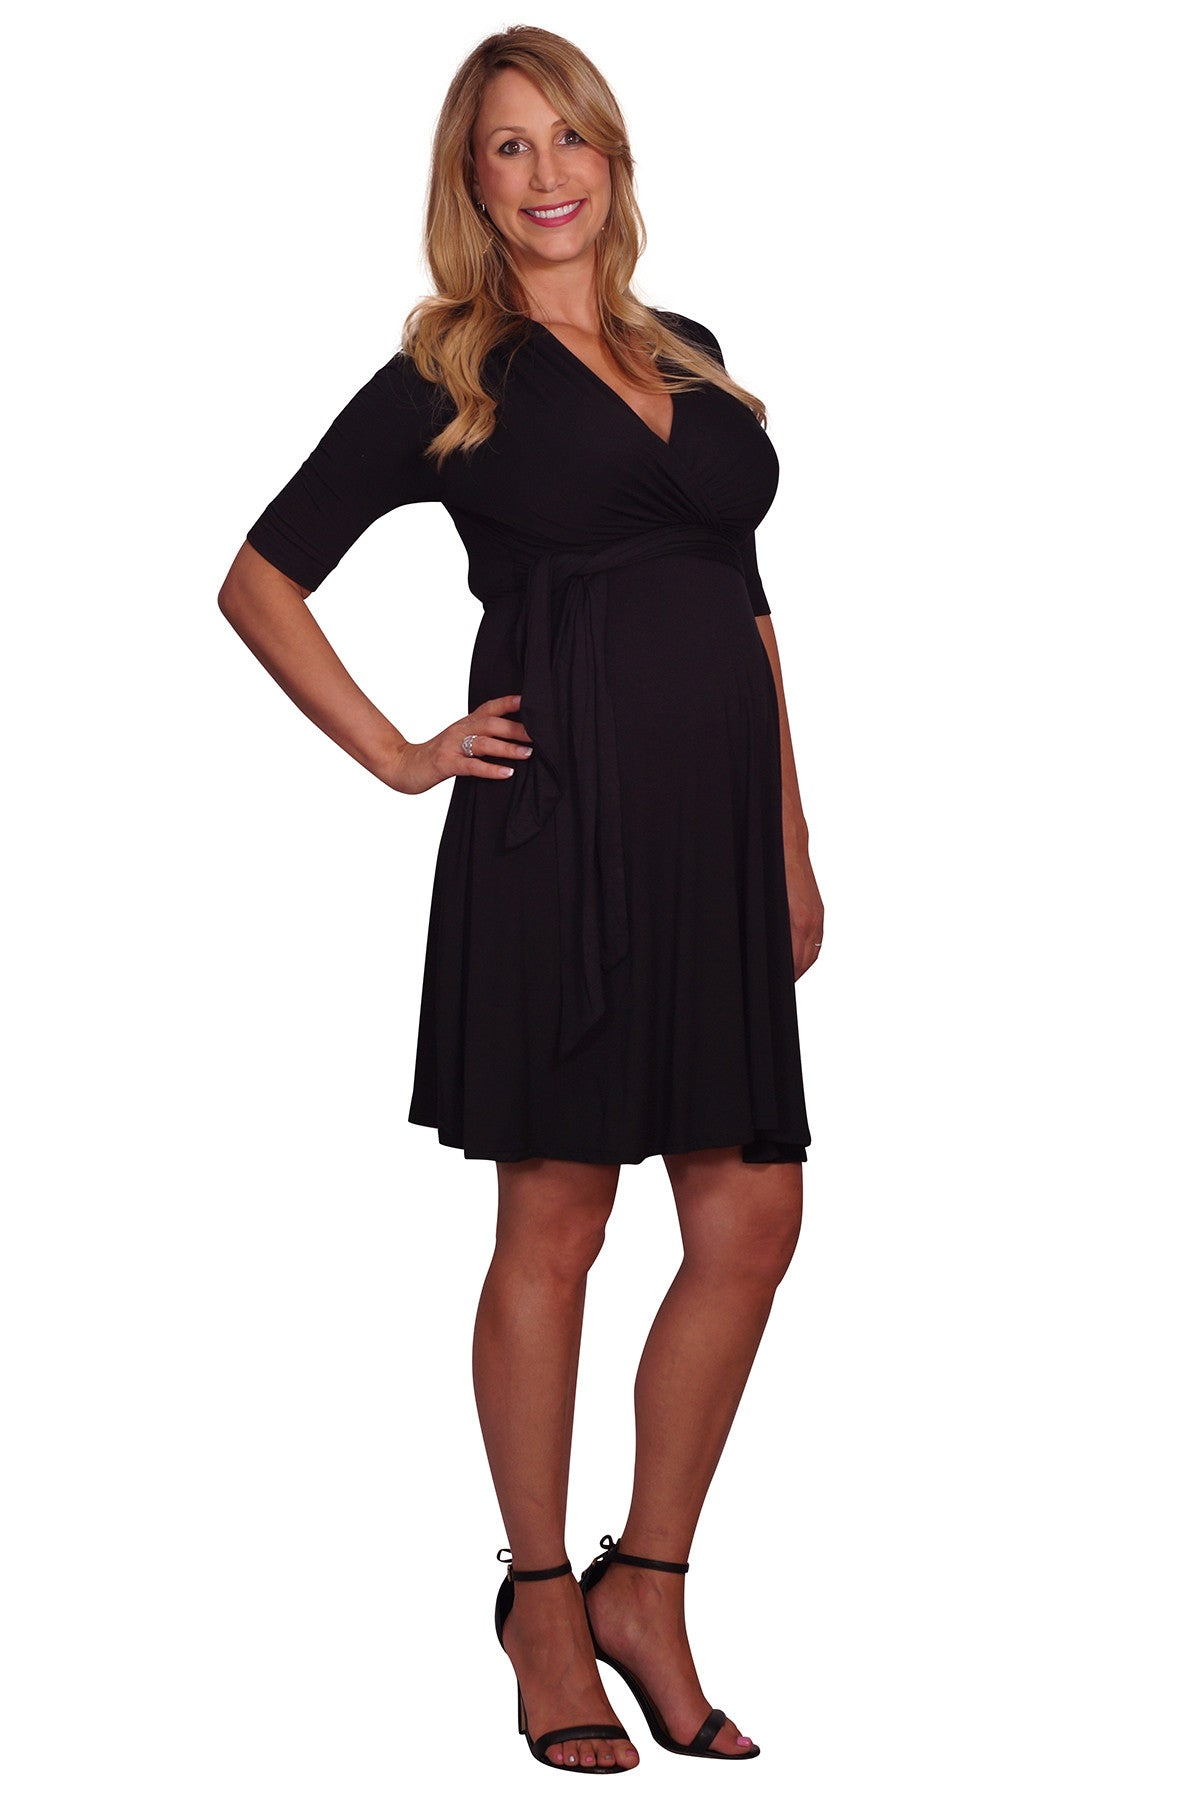 Maternity nursing dress nestling co maternity nursing dress maternity nursing dress ombrellifo Image collections